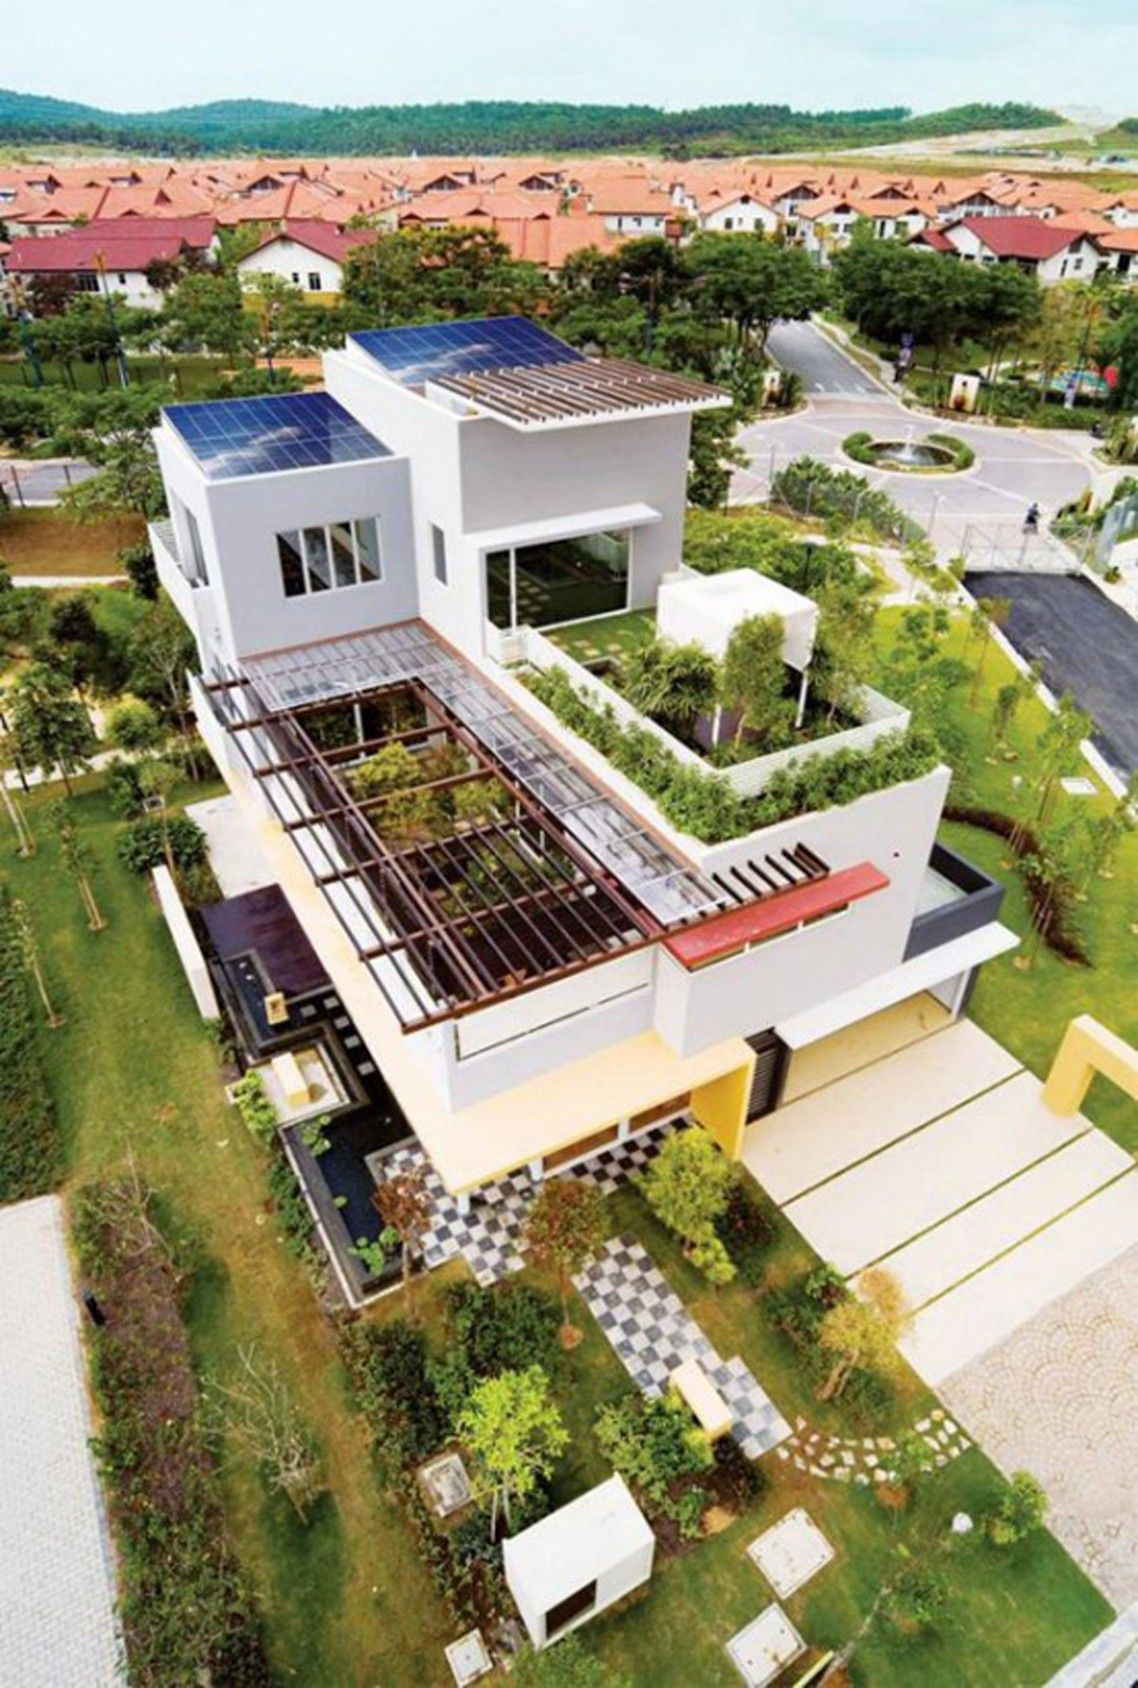 Sustainable Tropical Houses In Urban Environment Eco Friendly Home ...